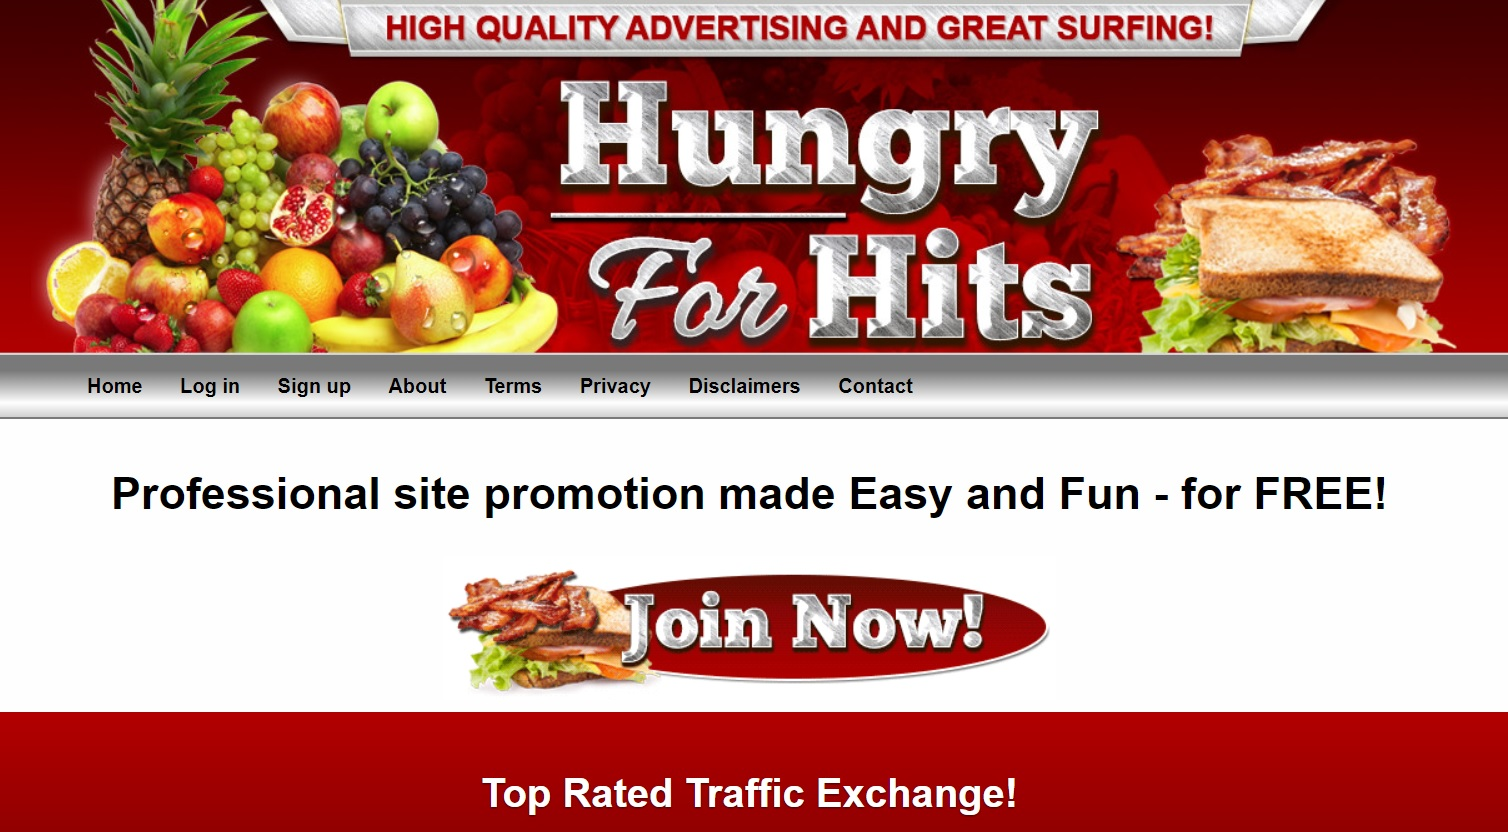 Hungry For Hits traffic exchange. Increase traffic for free!